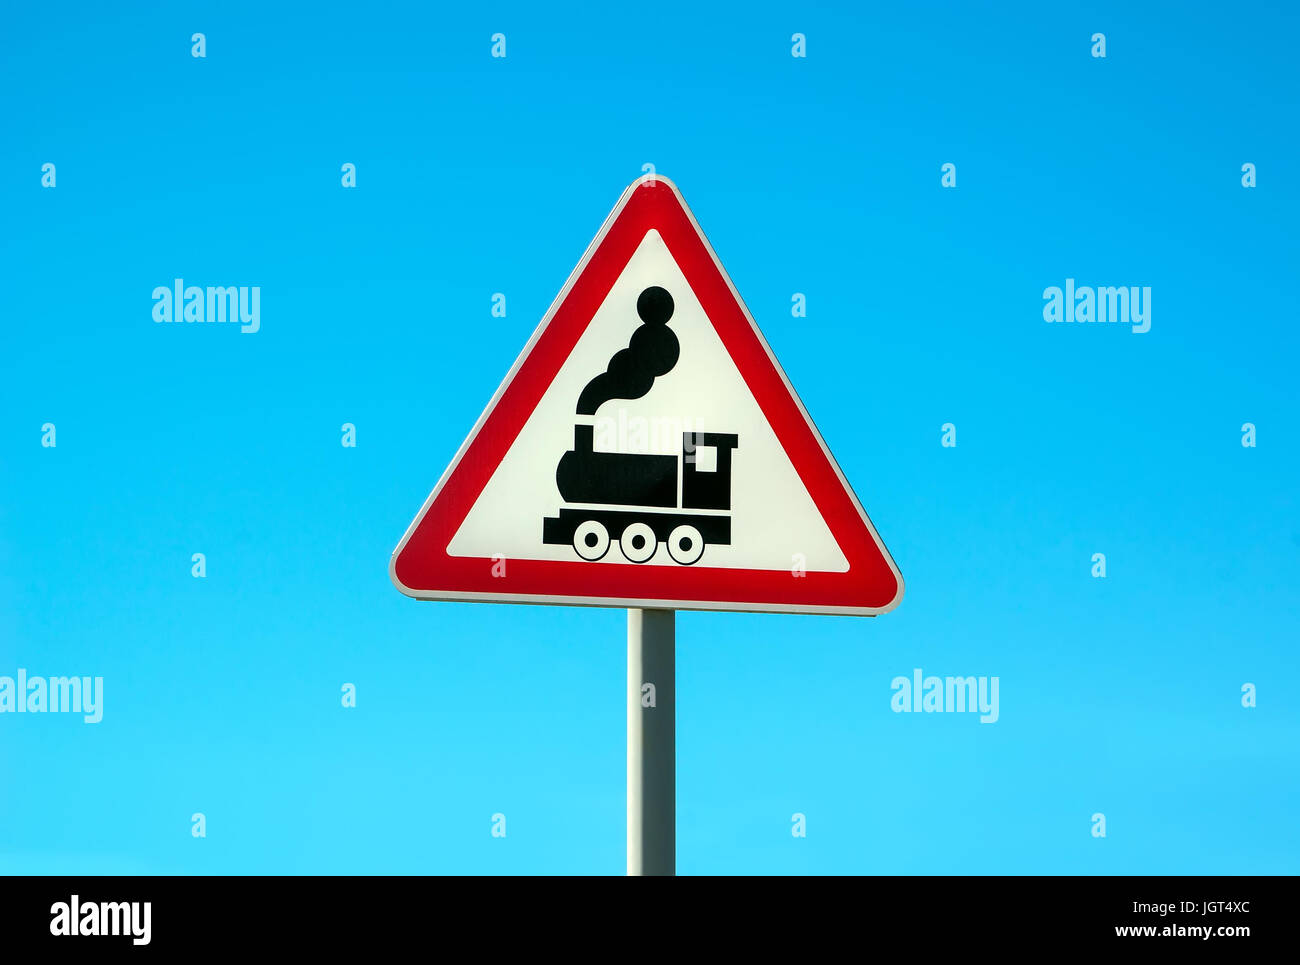 Railroad Level Crossing Sign without barrier or gate ahead the road, beware of train roadside steam engine locomotive - Stock Image